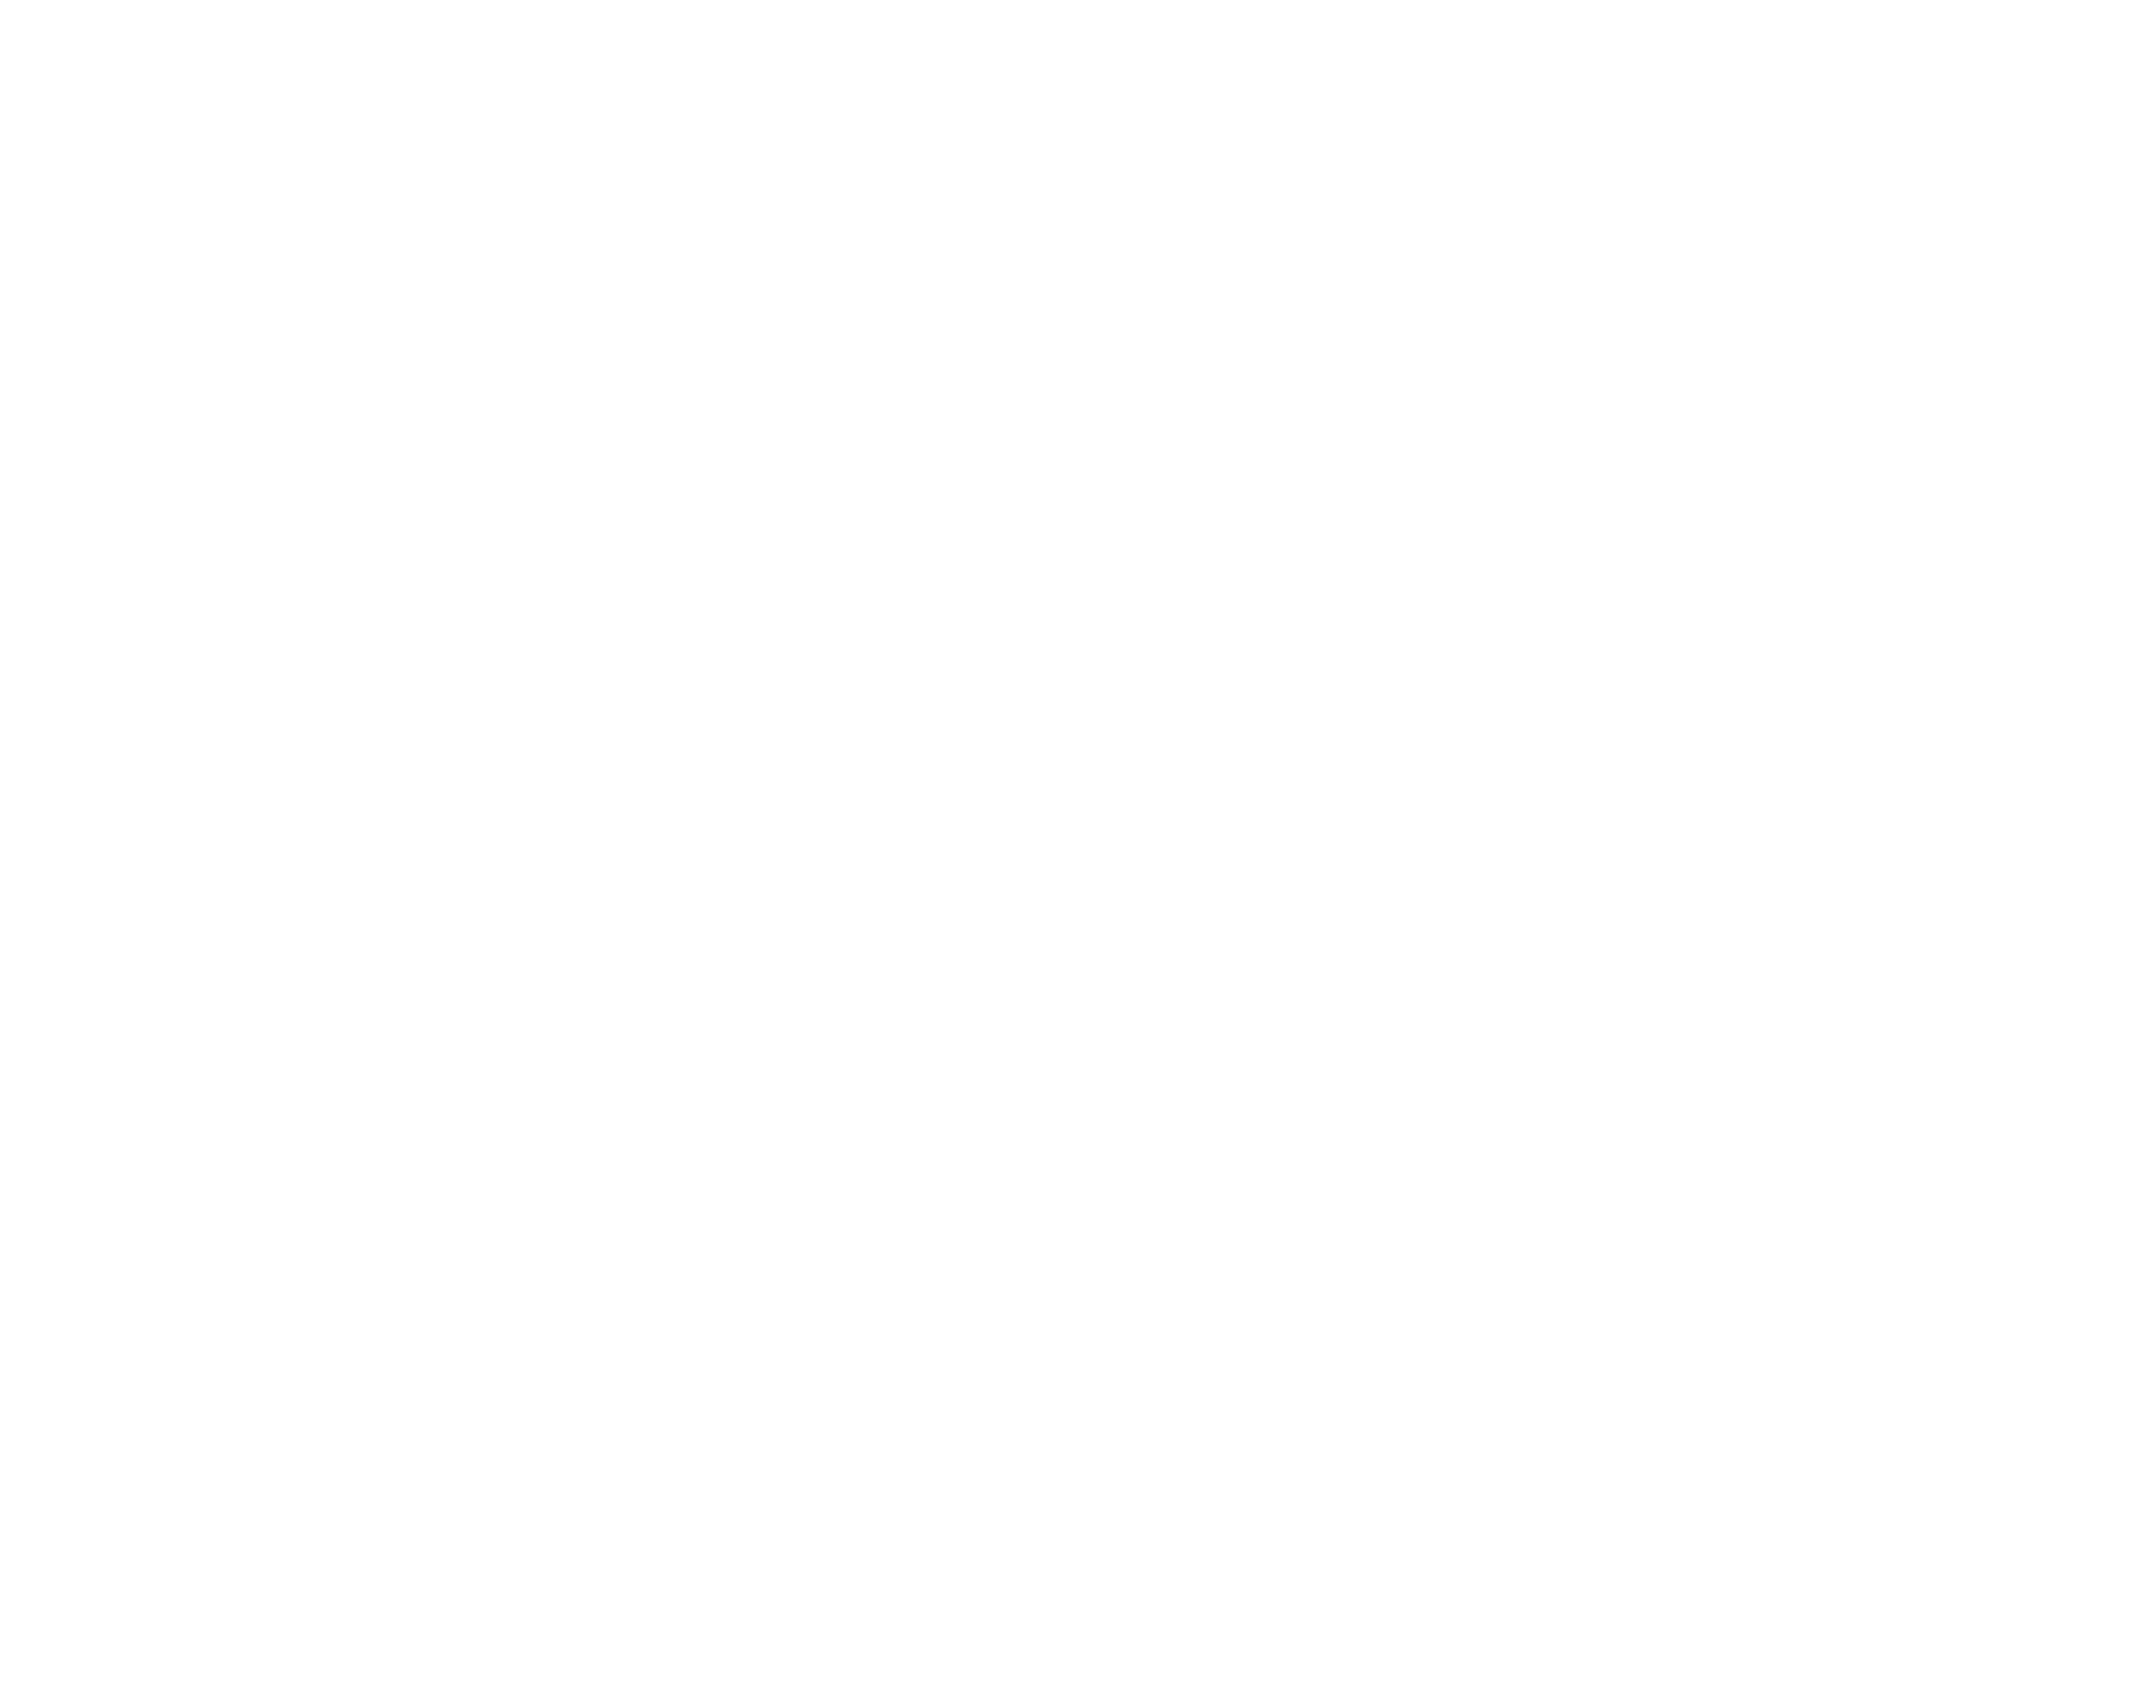 Grilling backyard barbecue